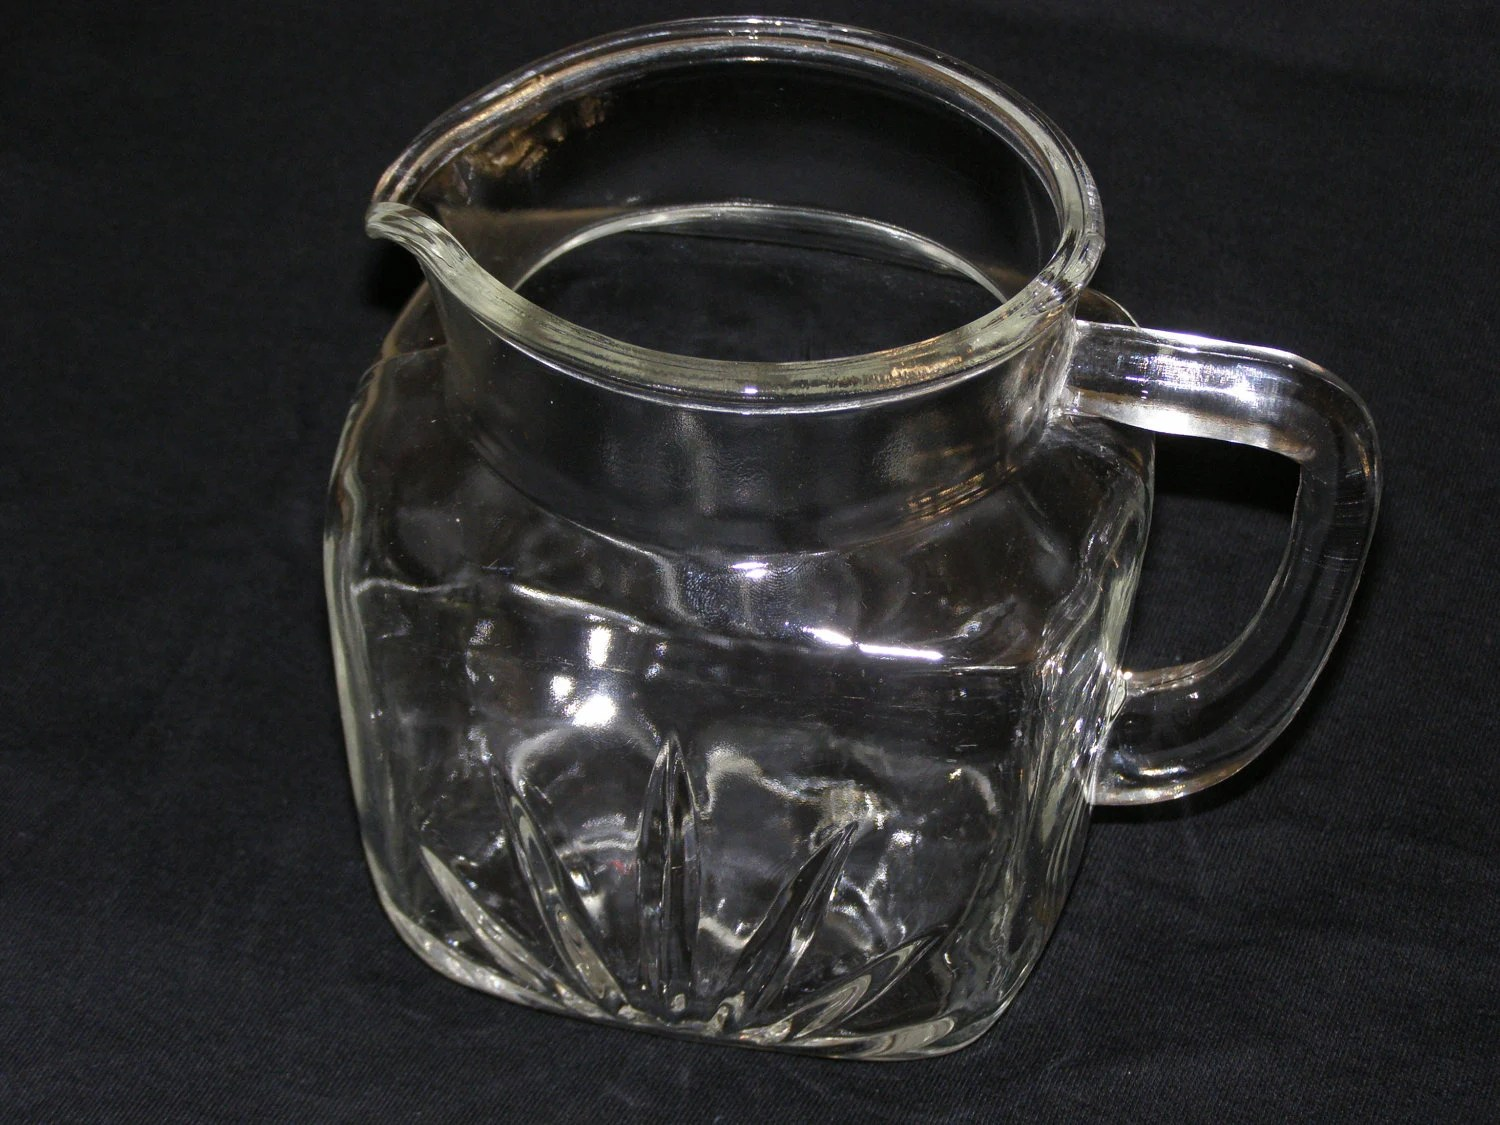 Large Glass Pitcher With Spout Vintage Glass Pitcher Square Base With Spout And Handle